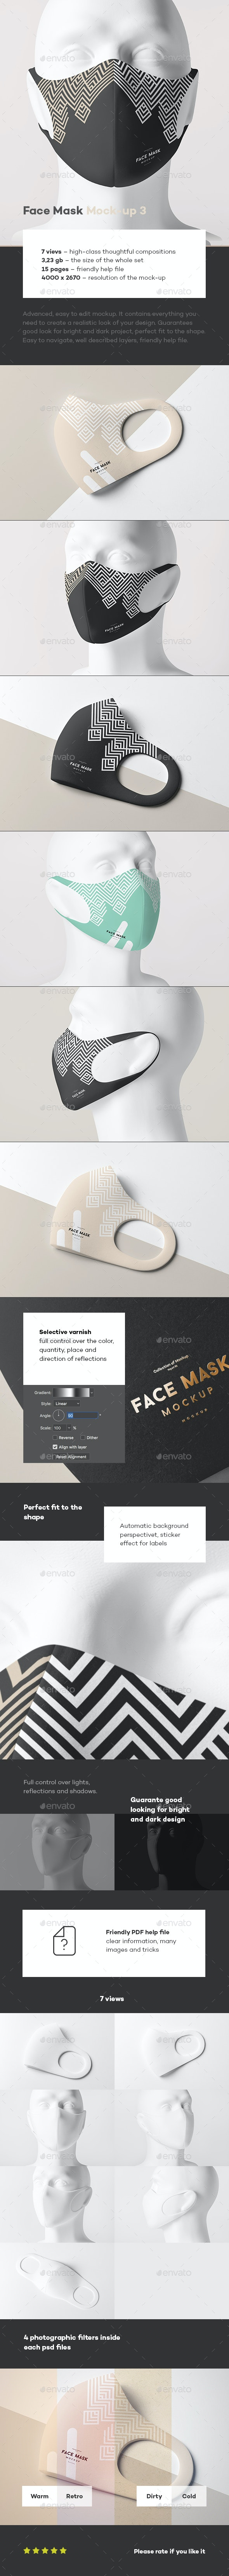 Face Mask Mock-up 3 - Miscellaneous Apparel